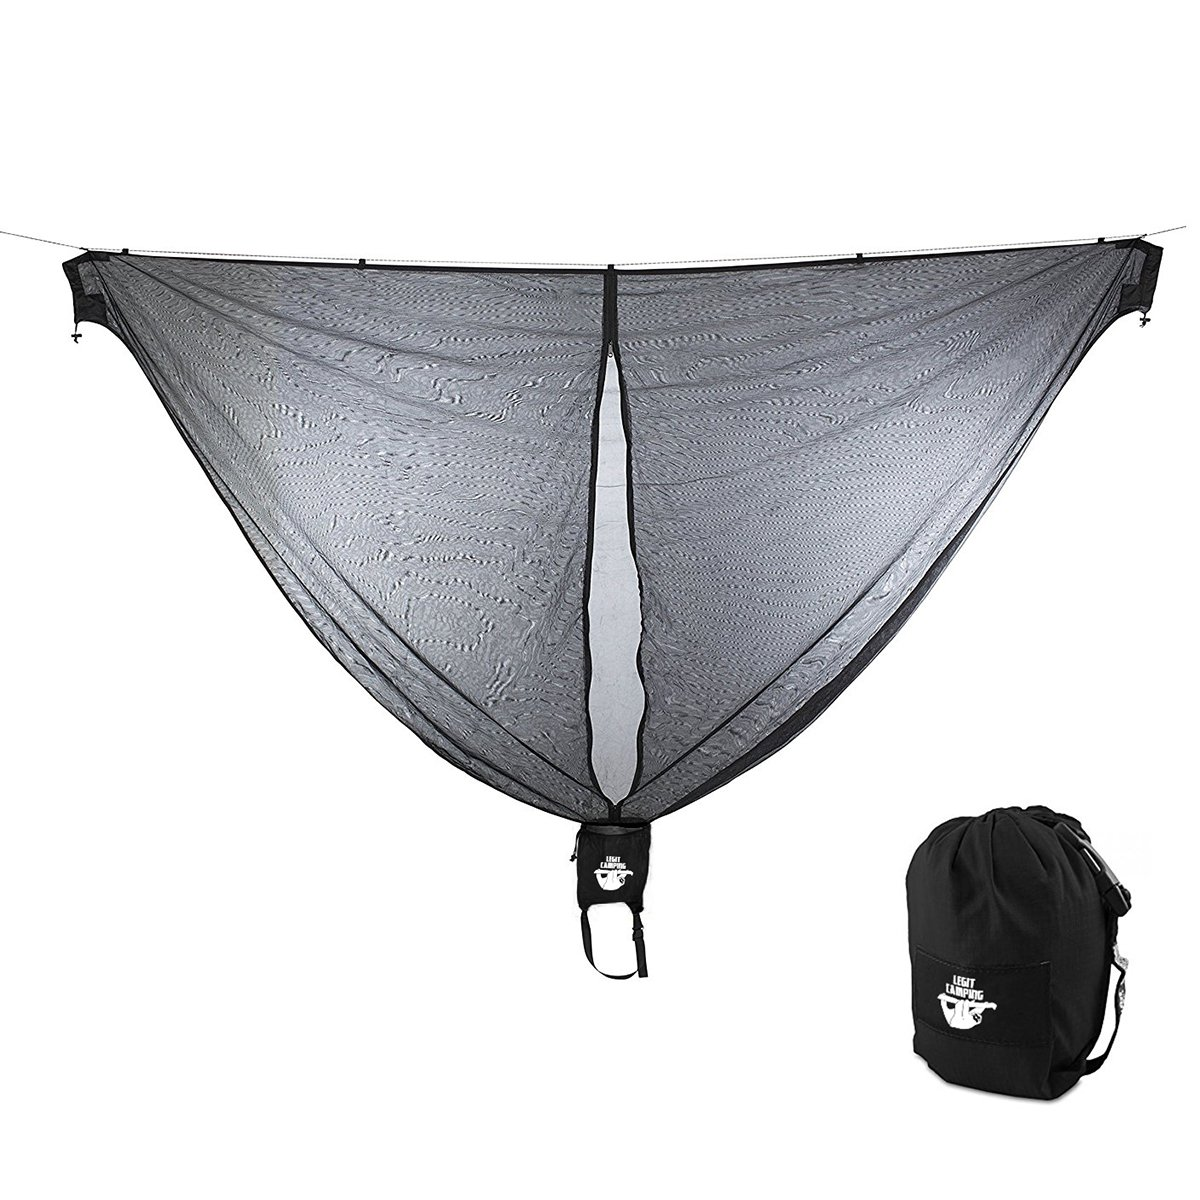 Legit Camping Hammock Bug Net 11 Feet Long Mosquito Net - Keep Out Noseeums -Compatible with All Hammock Brands - Includes Ridge Line - (Black) by Legit Camping